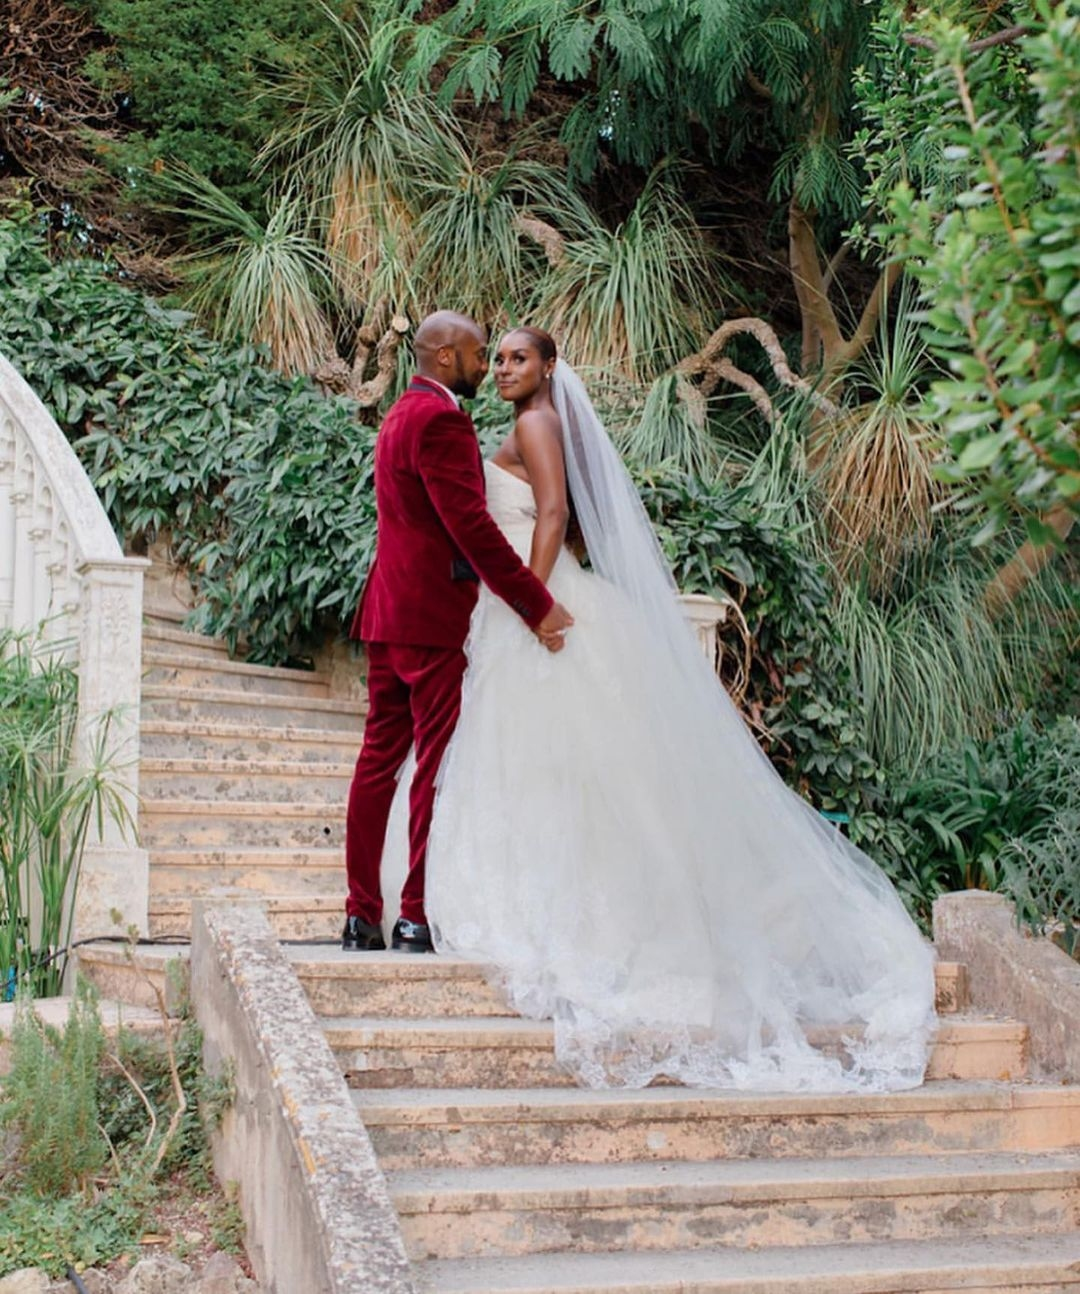 American Actress Issa Rae marries Businessman Louis Diame in intimate ceremony 4